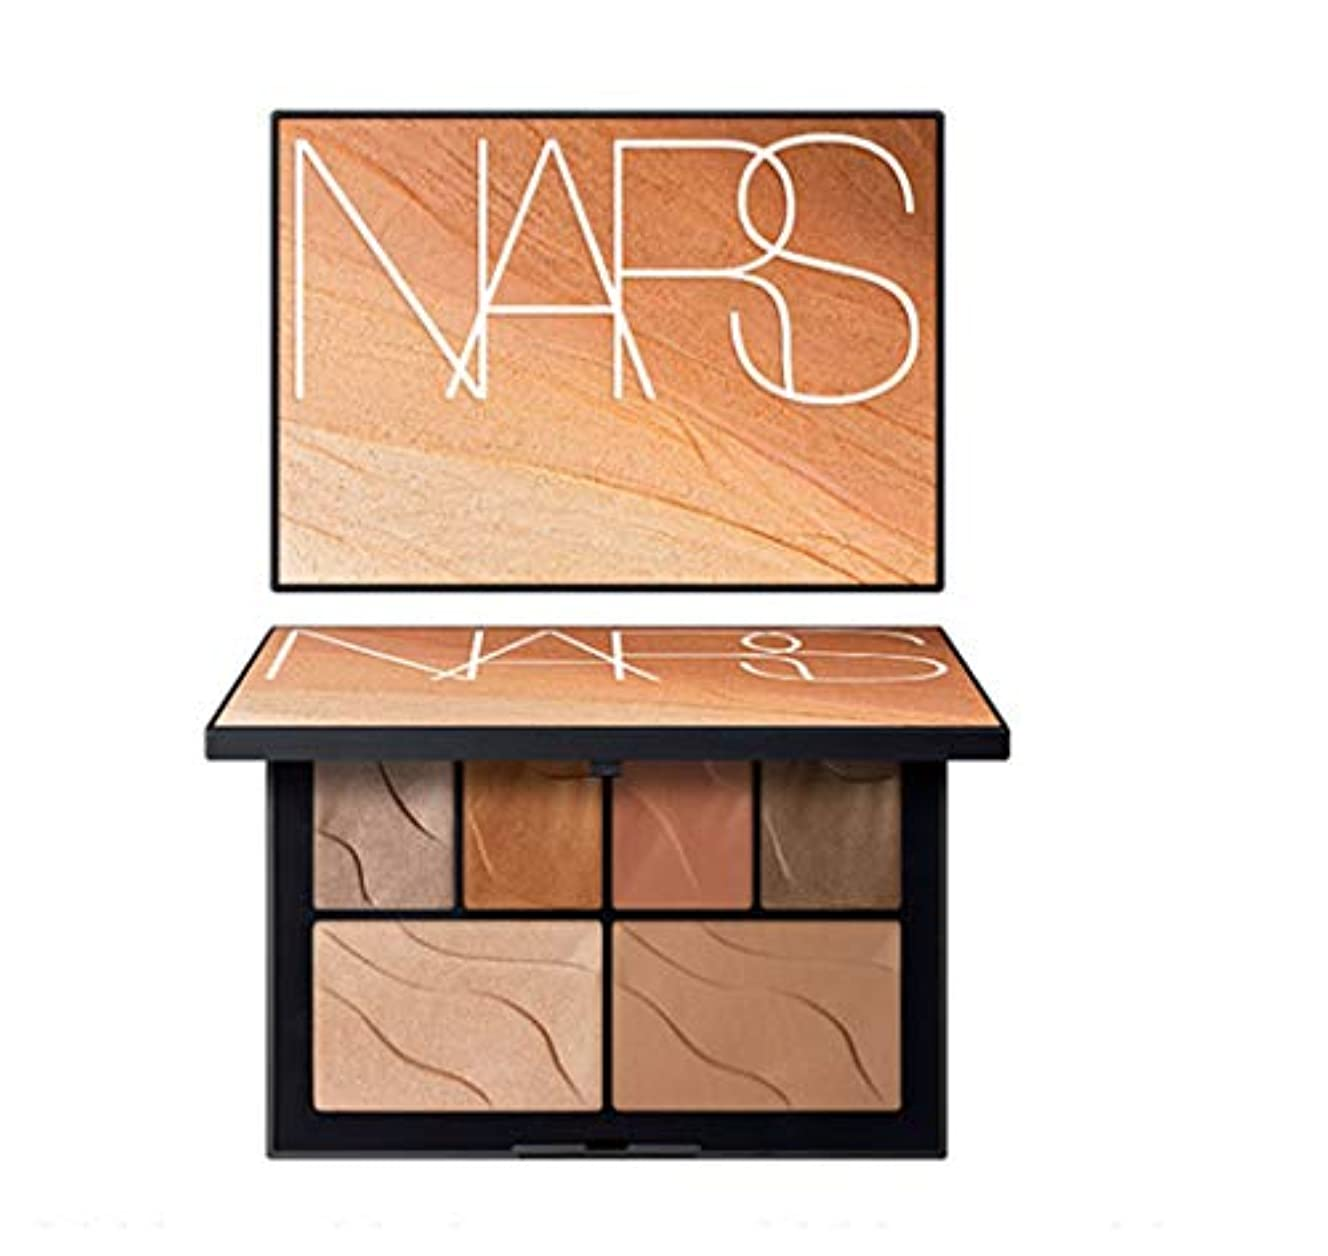 バンカー凶暴な信号NARS(ナーズ)[2019 Summer Color Collection] Face Palette HEAT OF THE NIGHT #summer lights(並行輸入品)